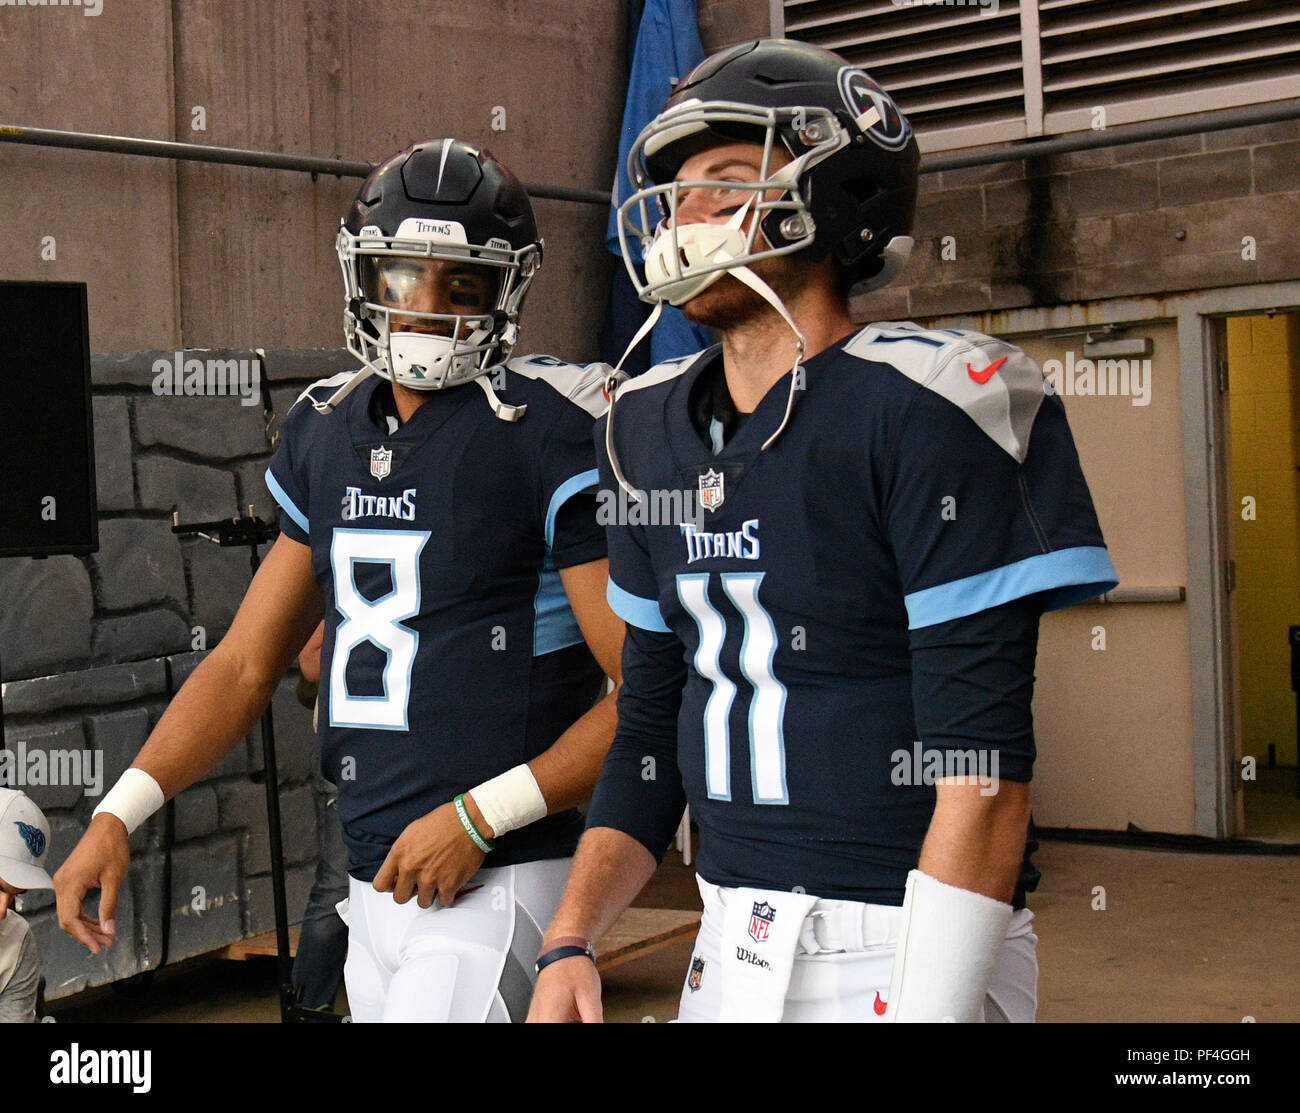 on sale a968f 39be0 Nashville, USA. 18 August 2018. Tennessee Titans quarterback ...